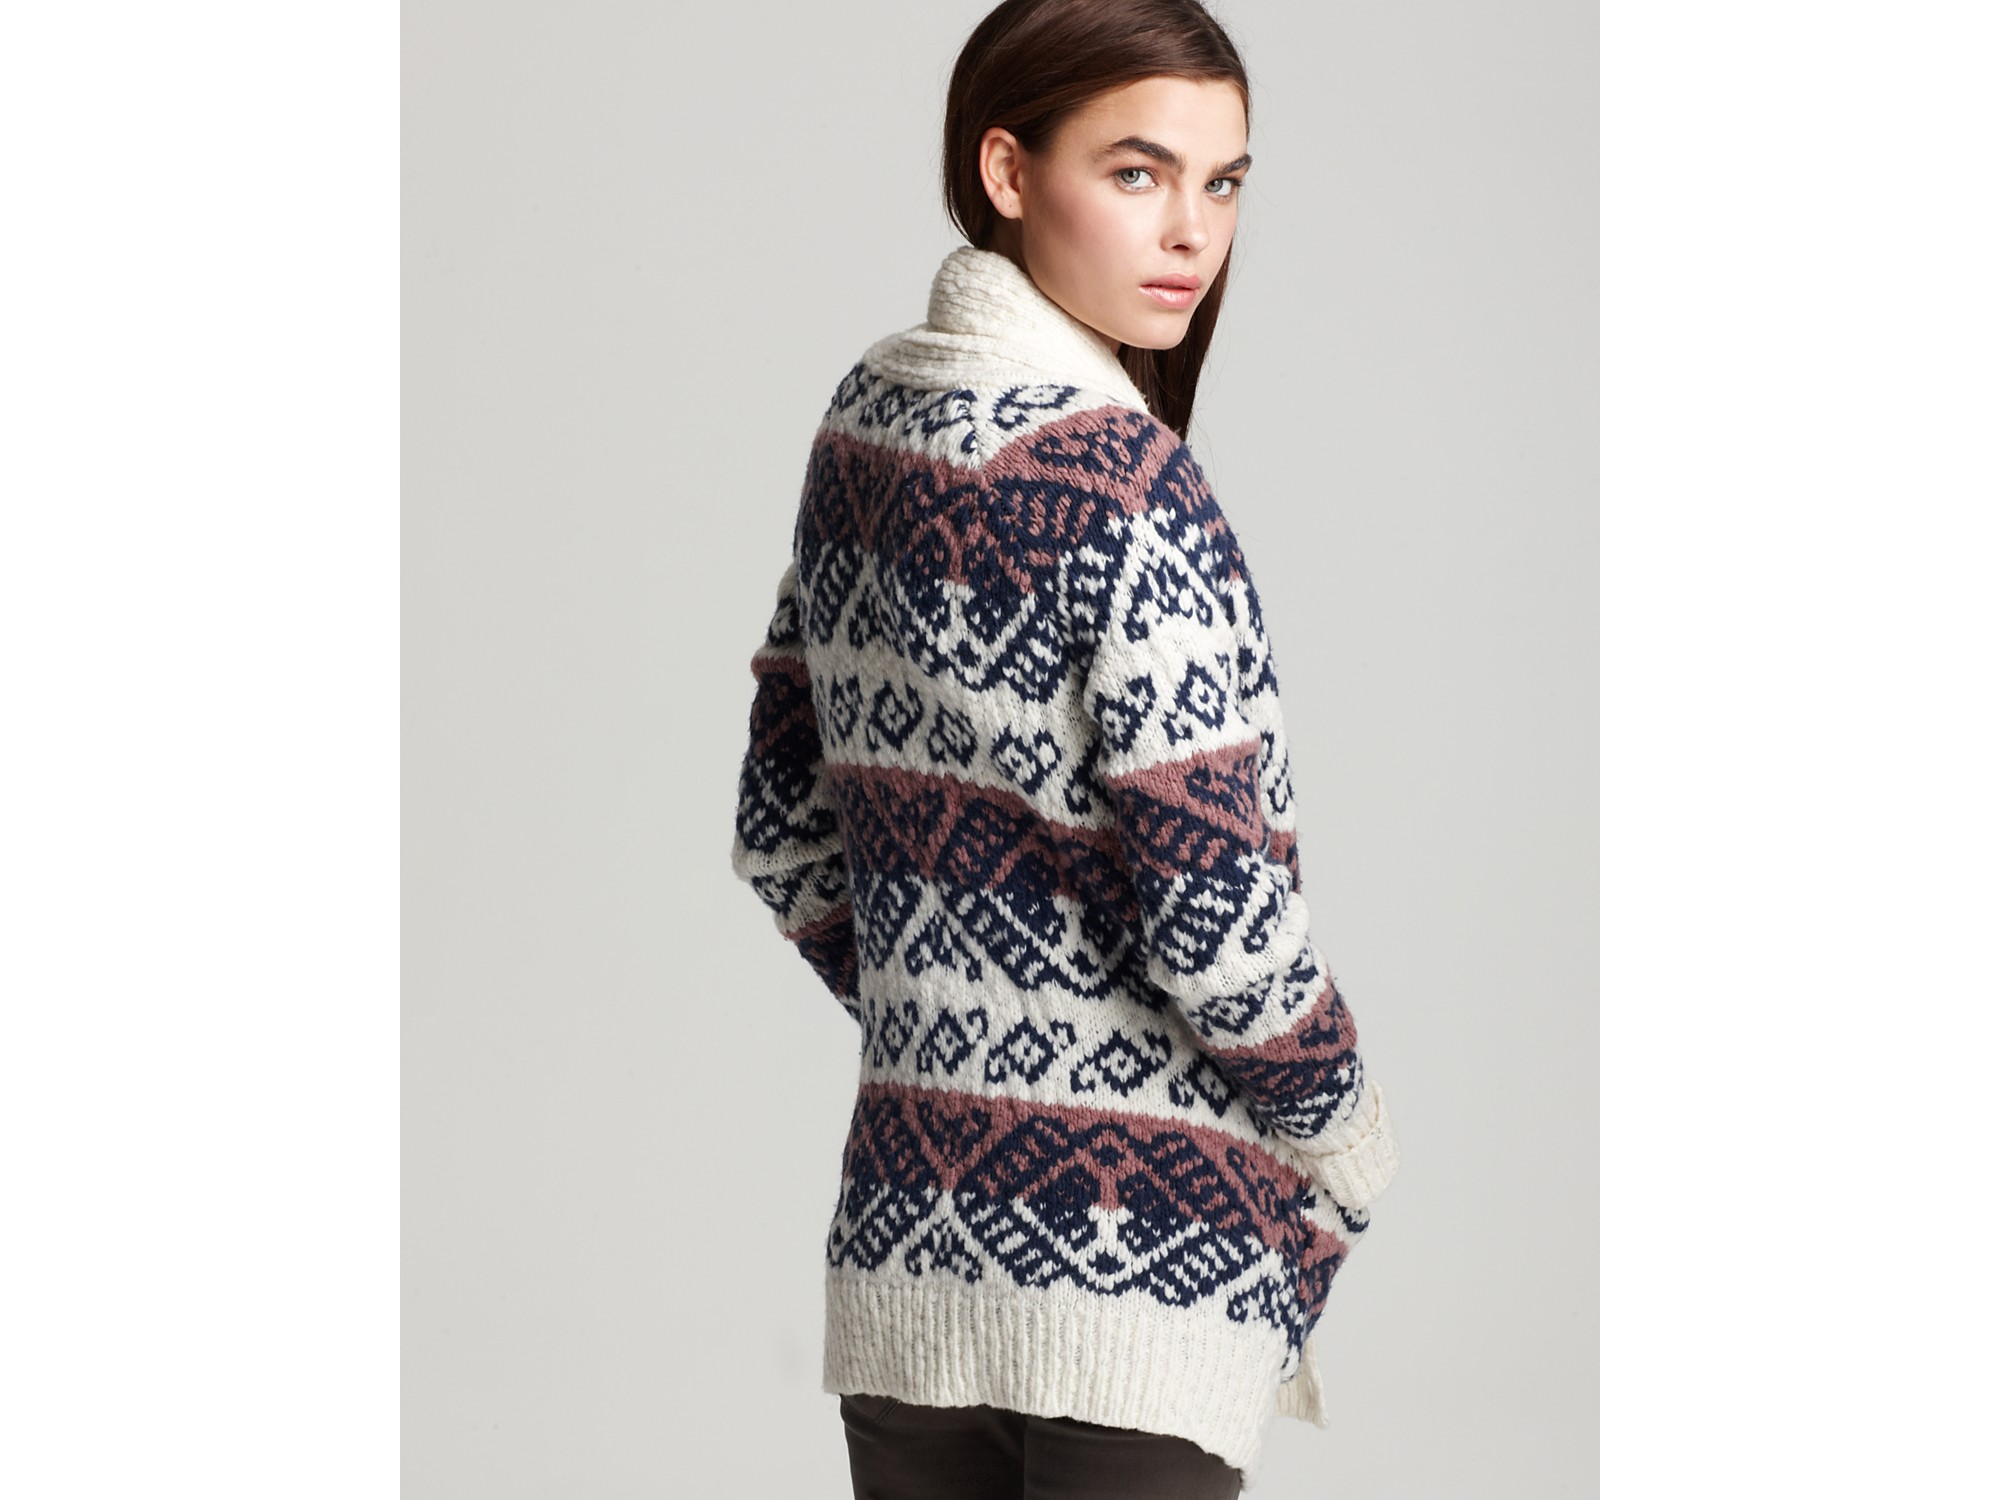 Marc by marc jacobs Kirsten Fair Isle Cardigan Sweater | Lyst